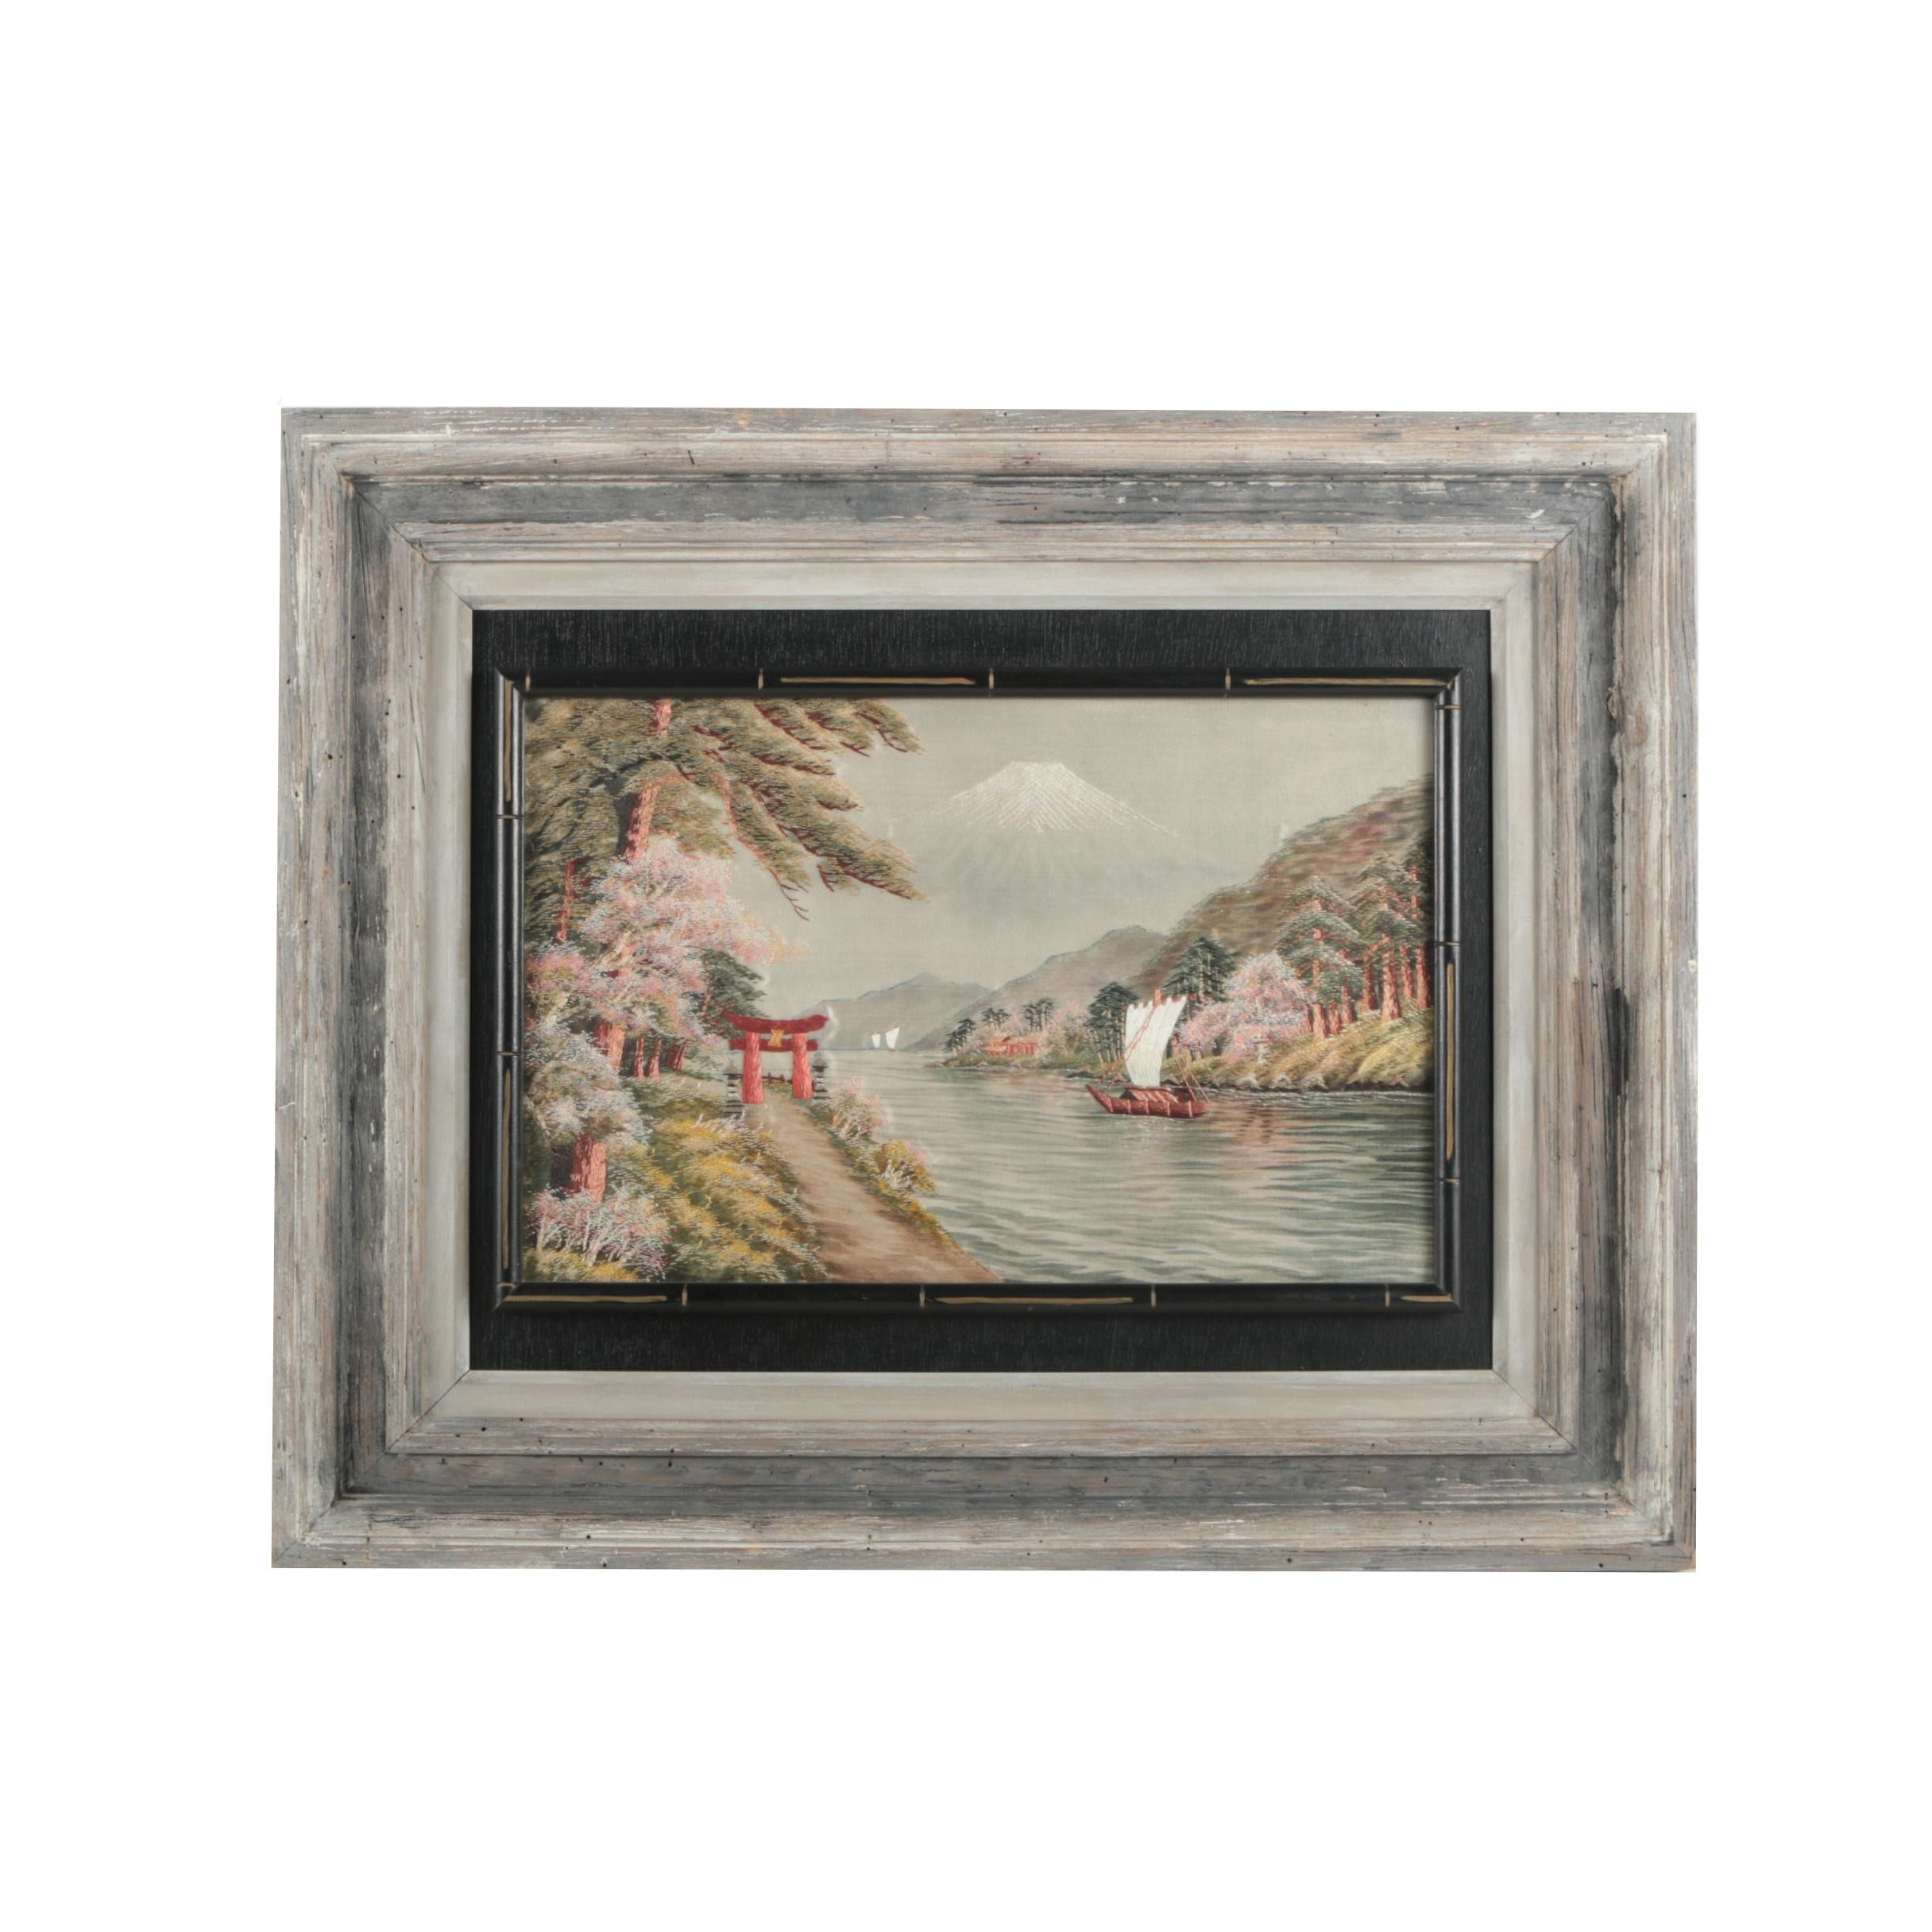 Japanese Silk Embroidery Of A River Scene Ebth